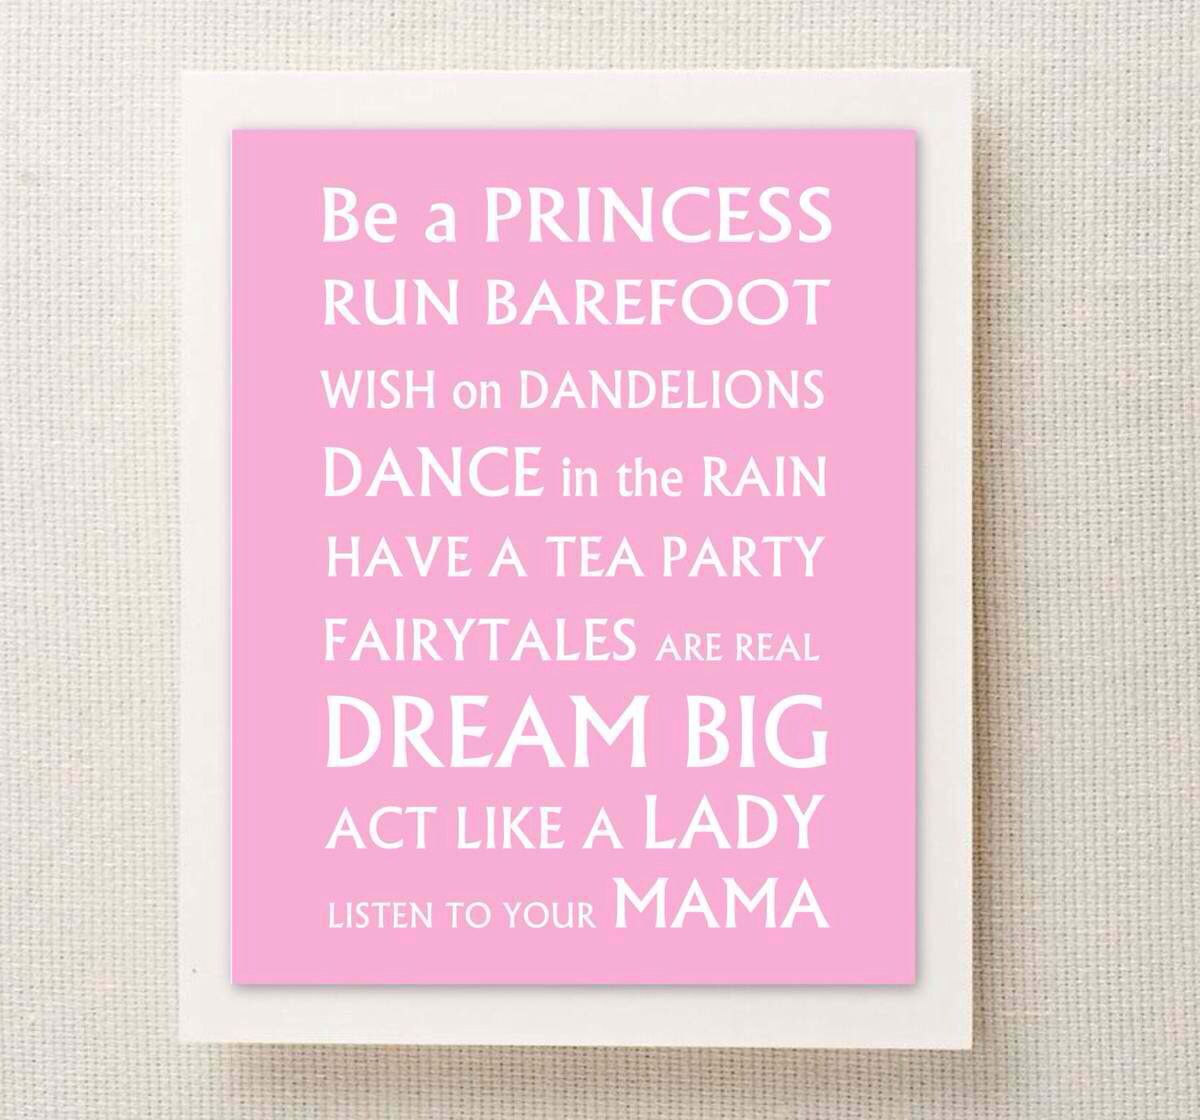 Girly Bedroom Accessories: Cute Saying For A Baby Girl!